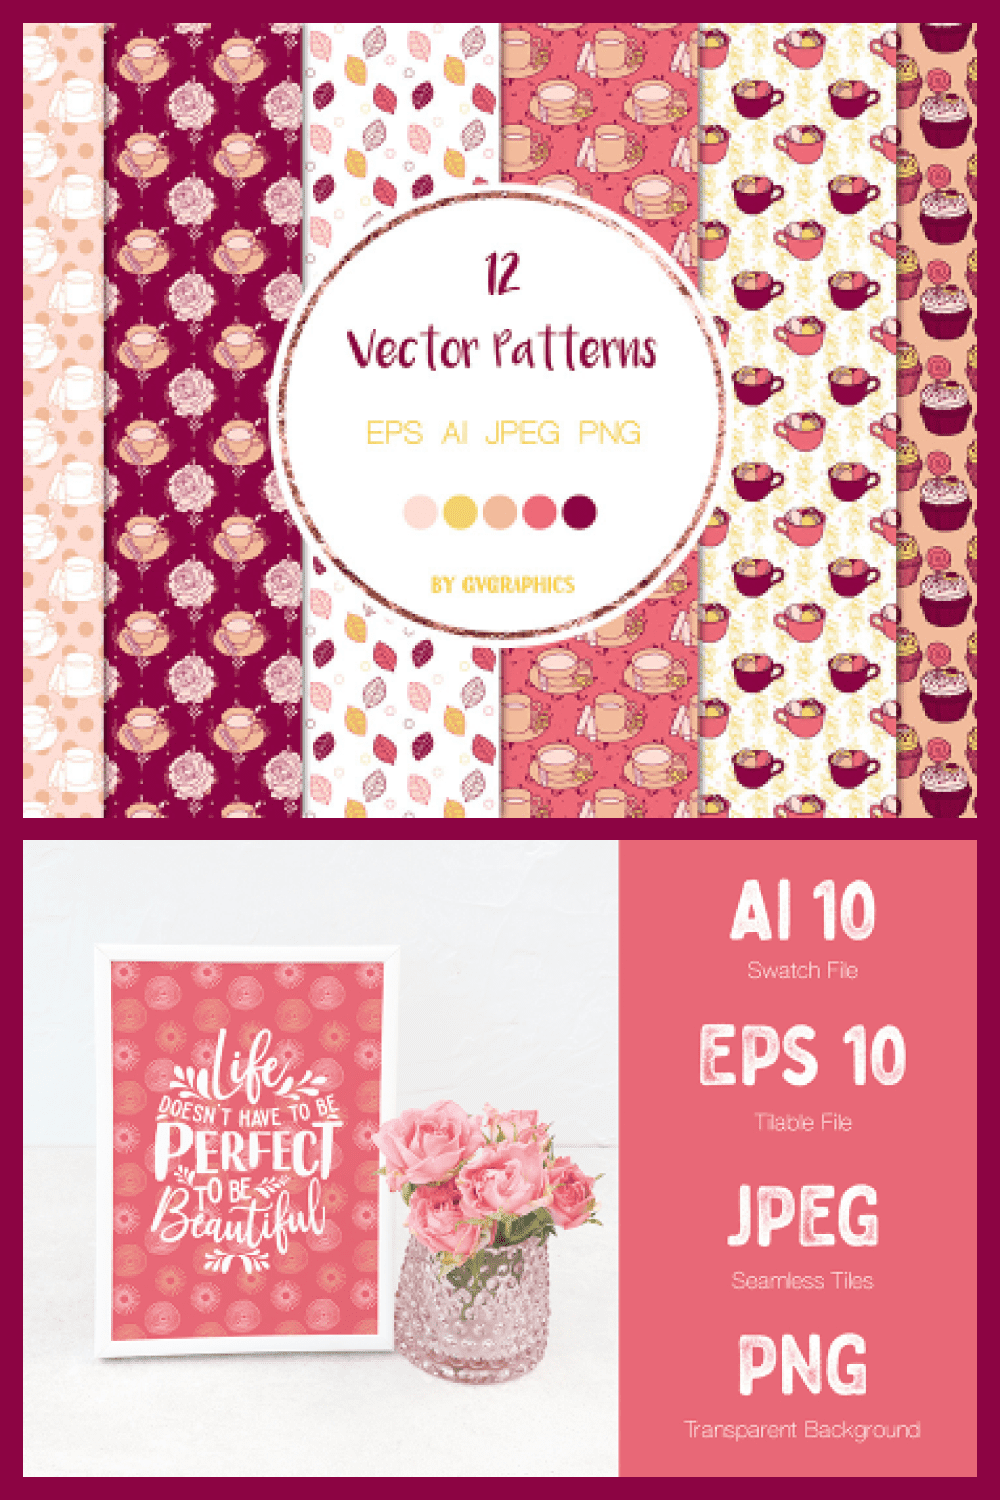 Roses, Tea Cups and Cupcakes Vector Patterns and Seamless Tiles - MasterBundles - Pinterest Collage Image.